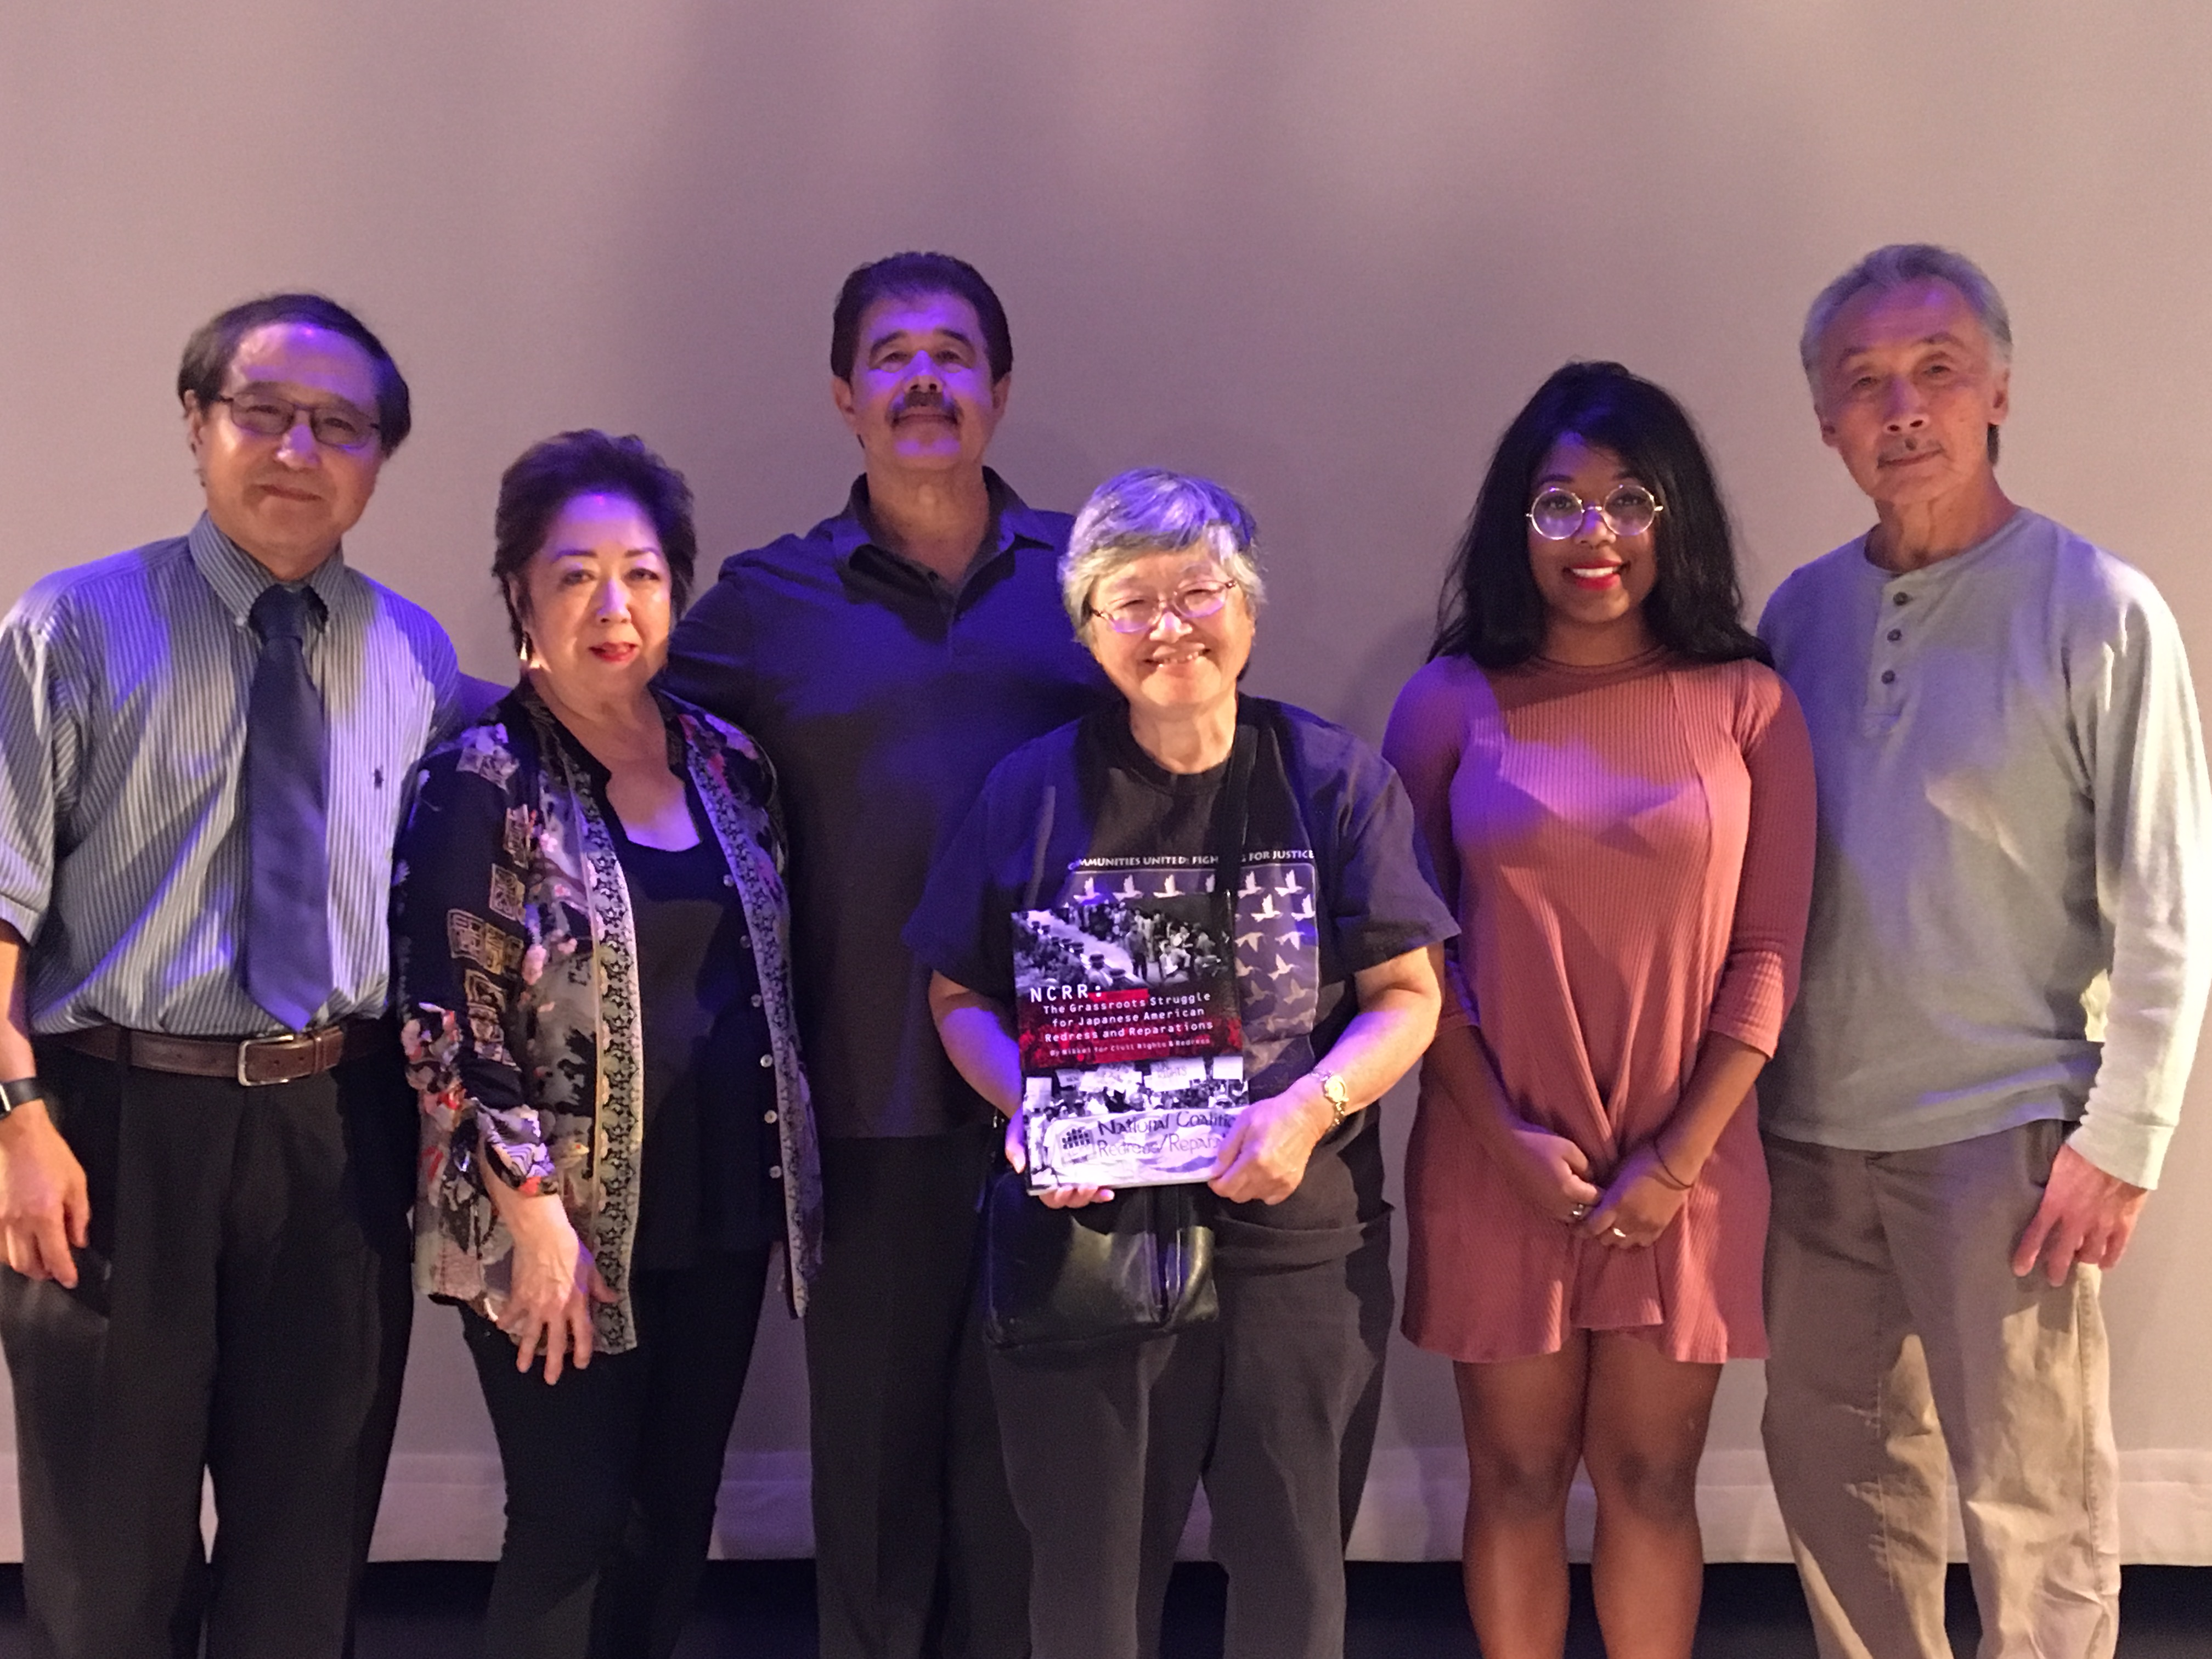 Japanese American Reddress & Reparations (Co-sponsored with Asian Pacific Islander Resource Center)